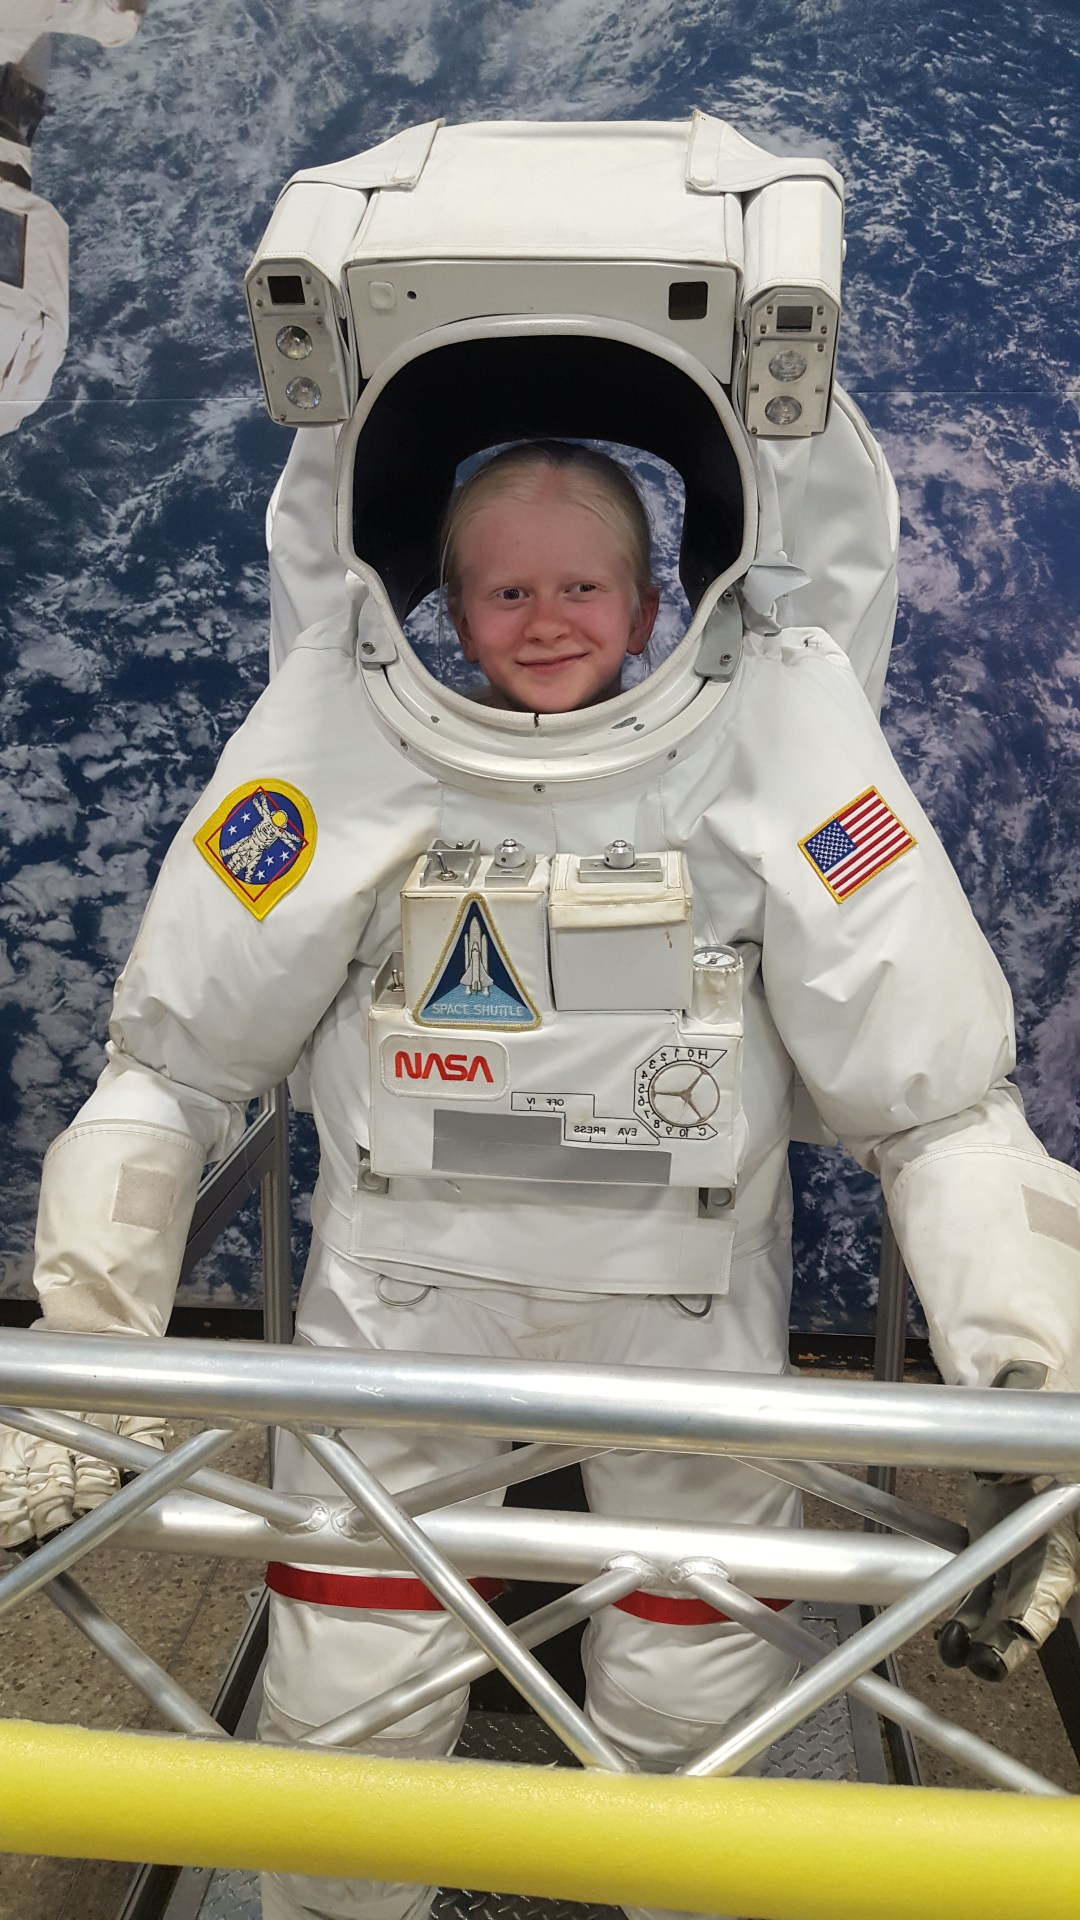 Space Camp Cadet Wearing Astronaut Suit